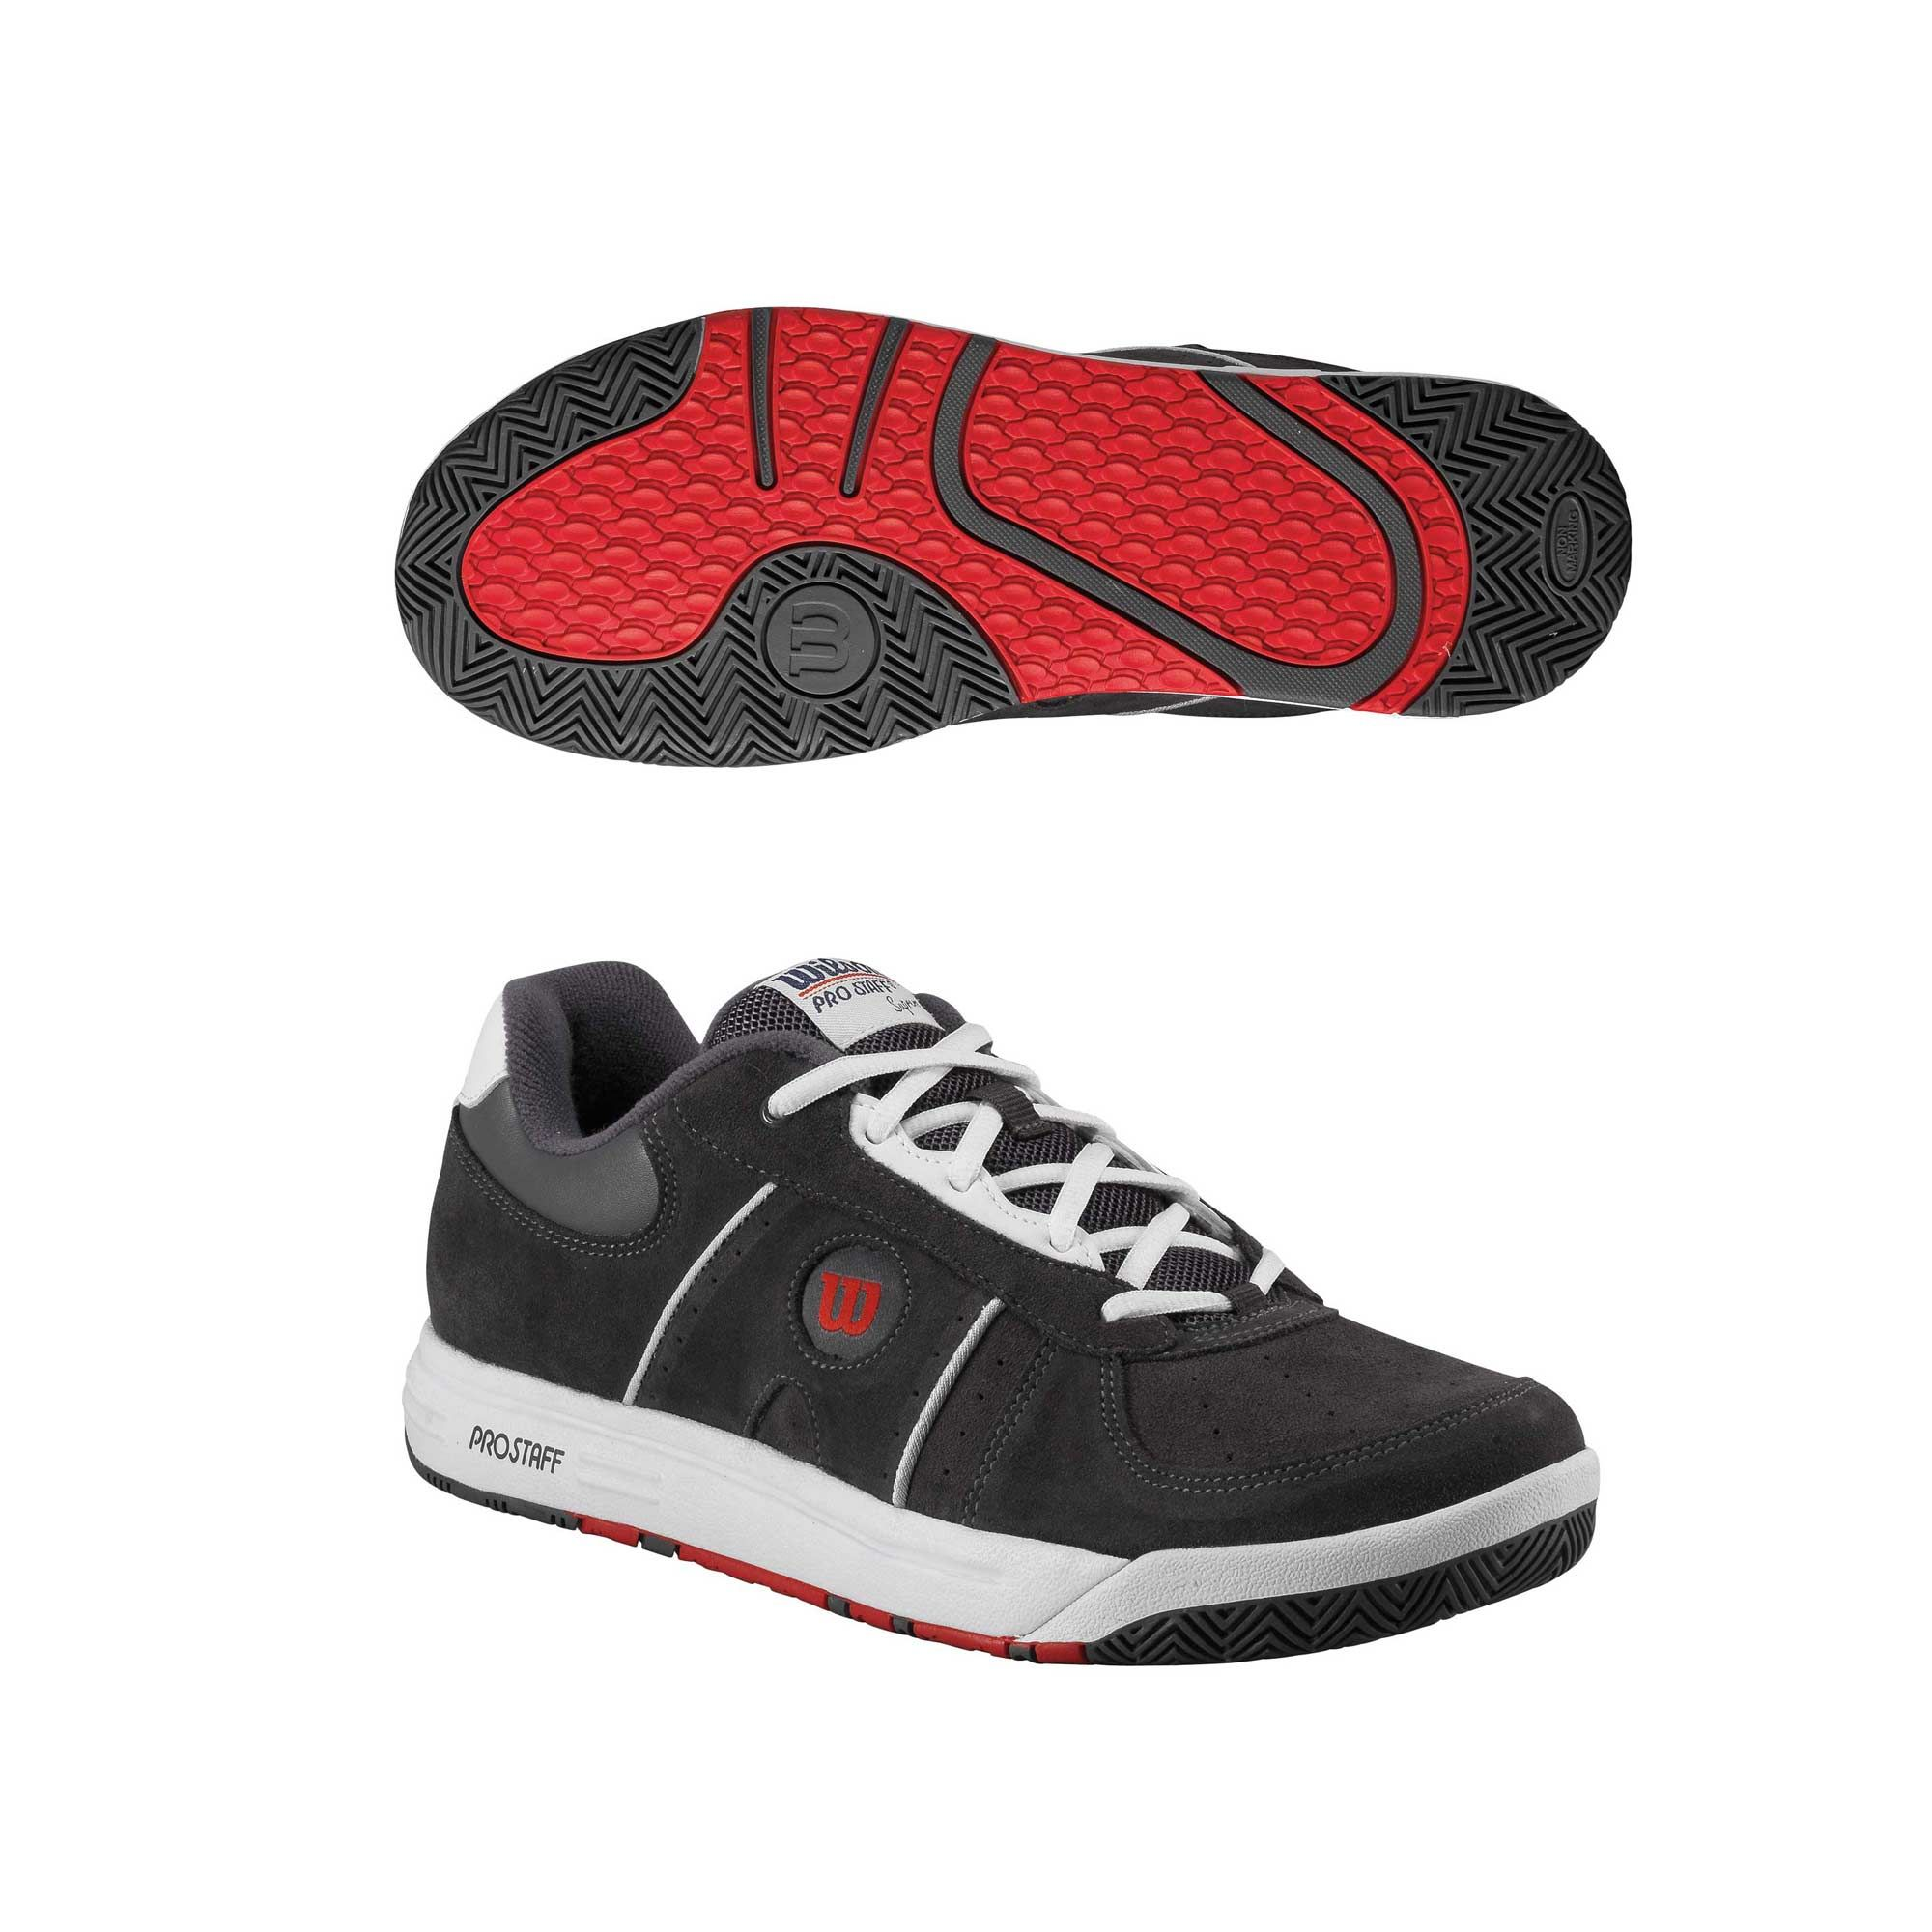 wilson pro staff classic supreme mens tennis shoes